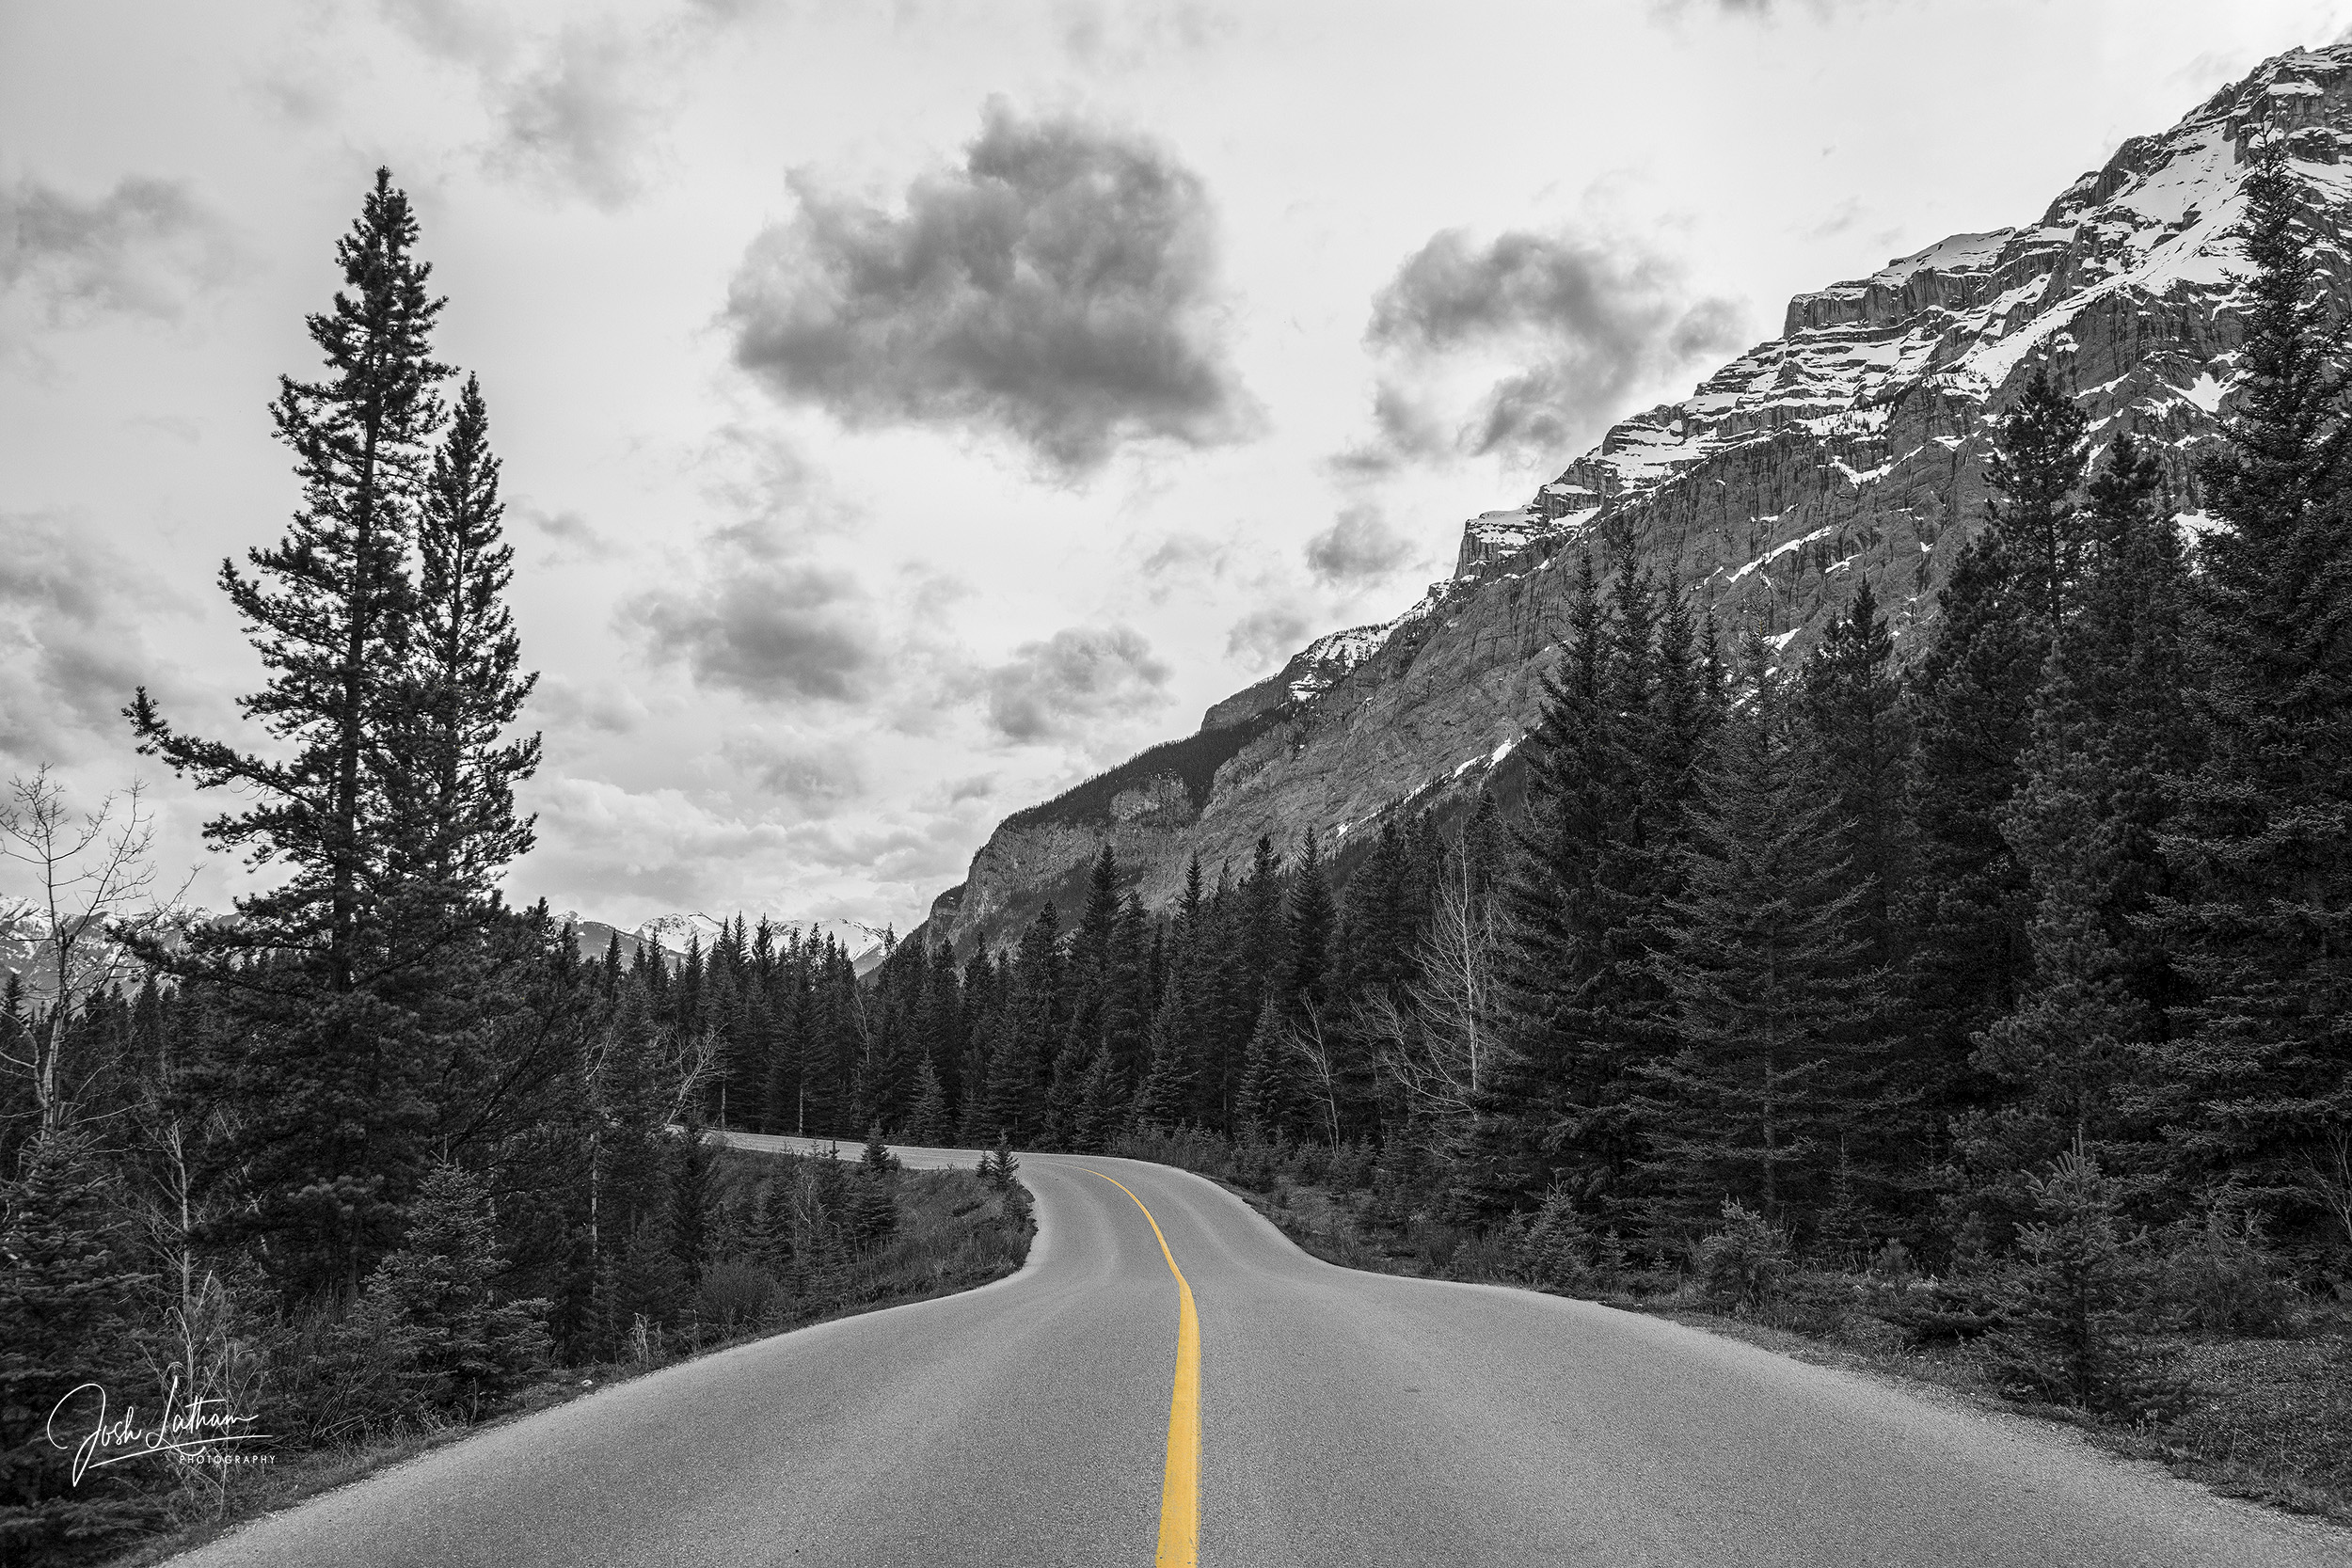 A beautiful drive through Banff National Park